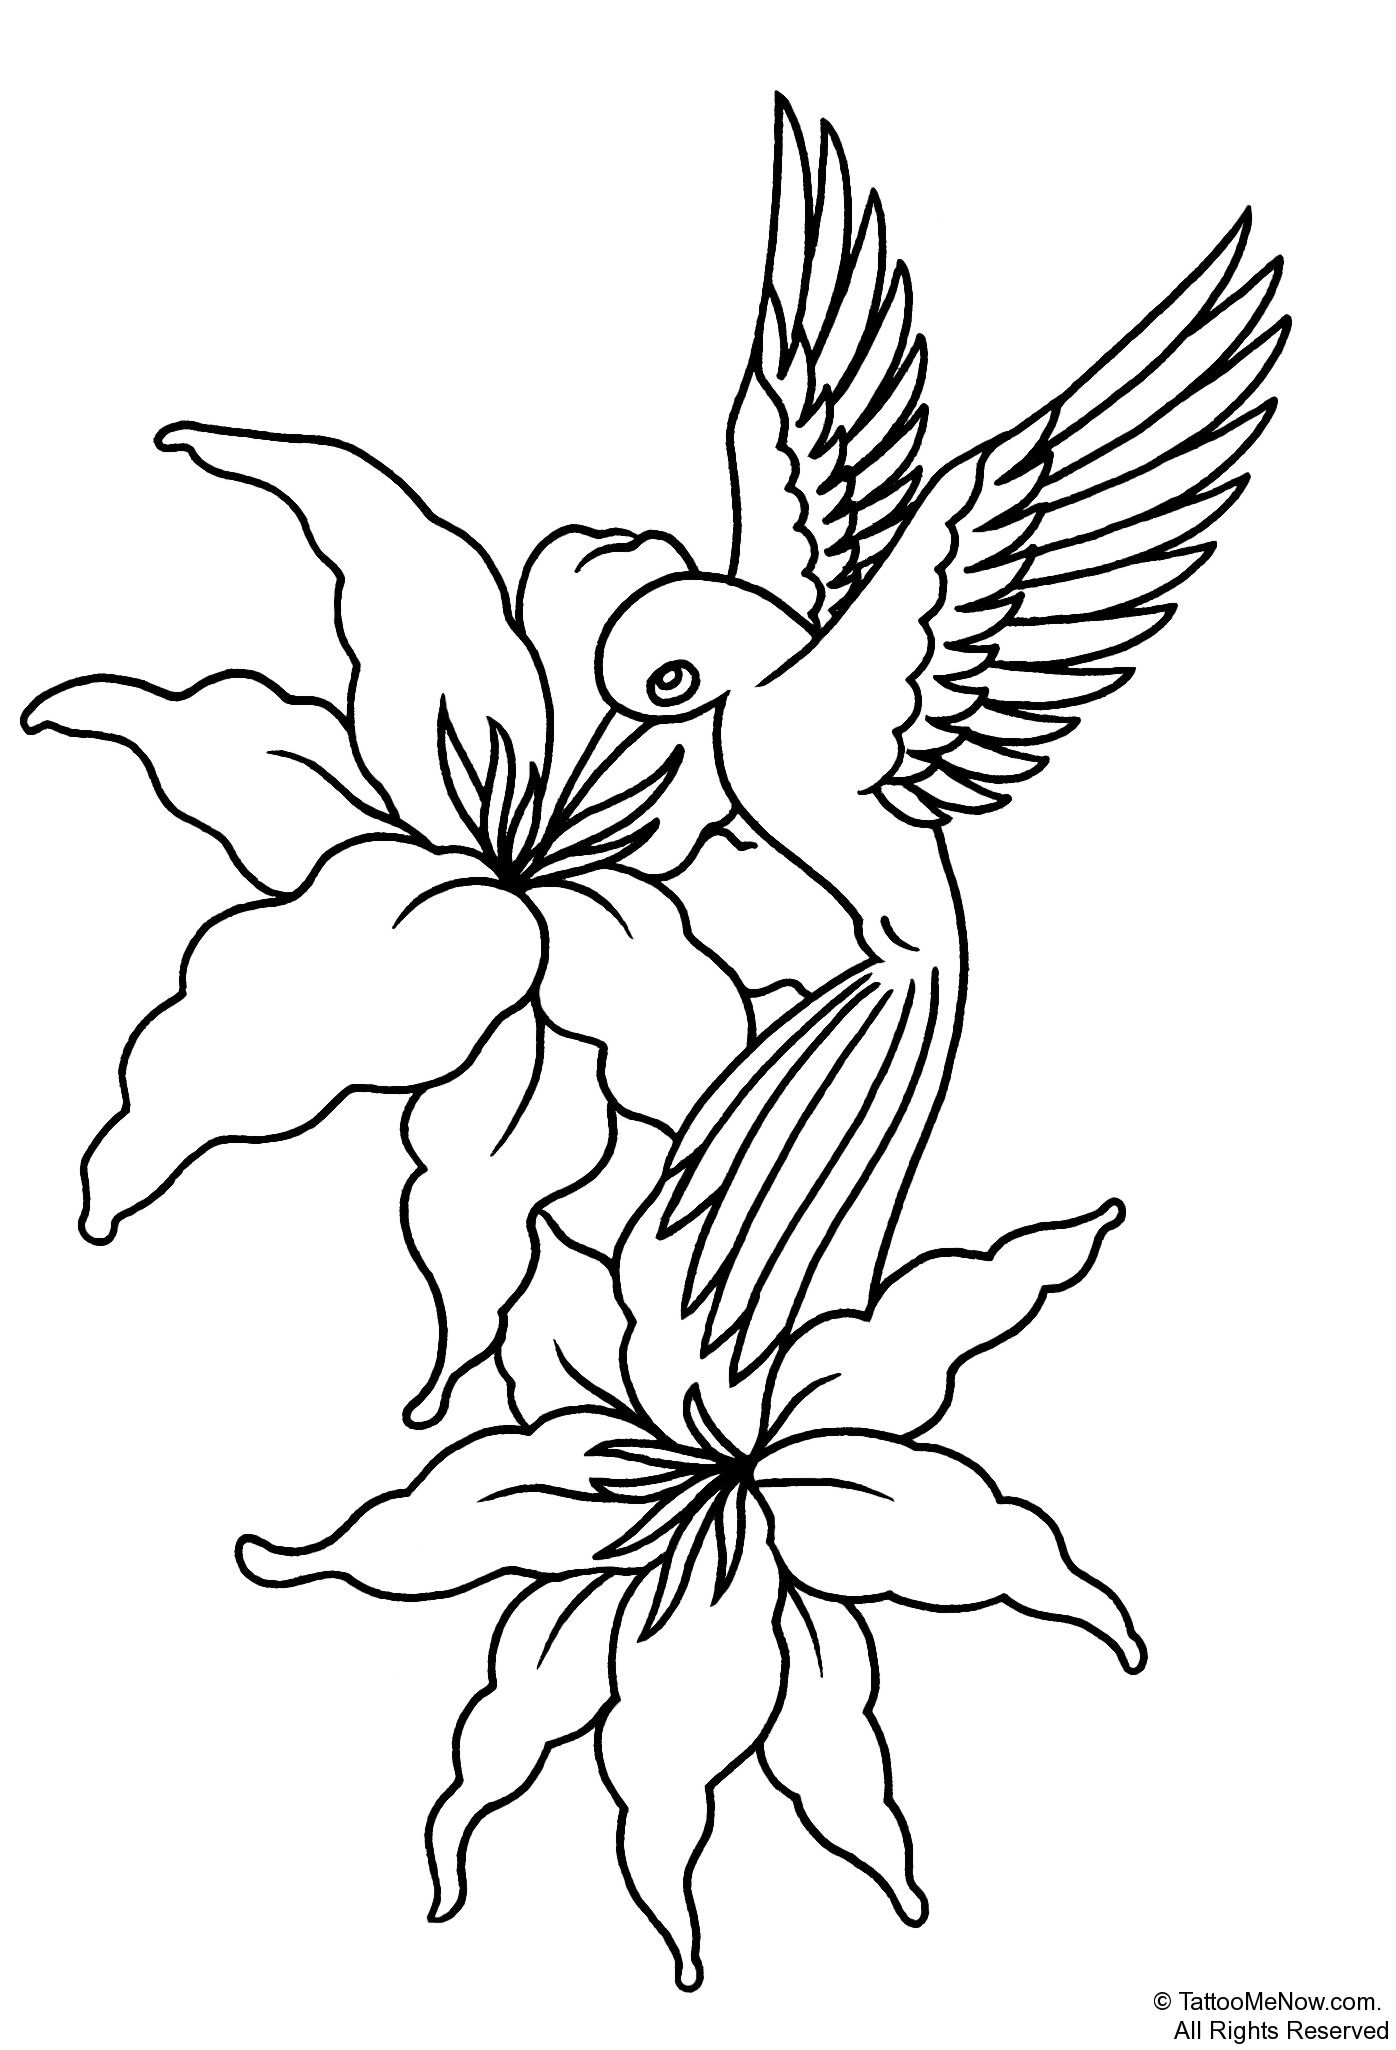 Free Printable Tattoo Stencils | Your Free Tattoo Designs & Stencils - Free Printable Flower Stencils